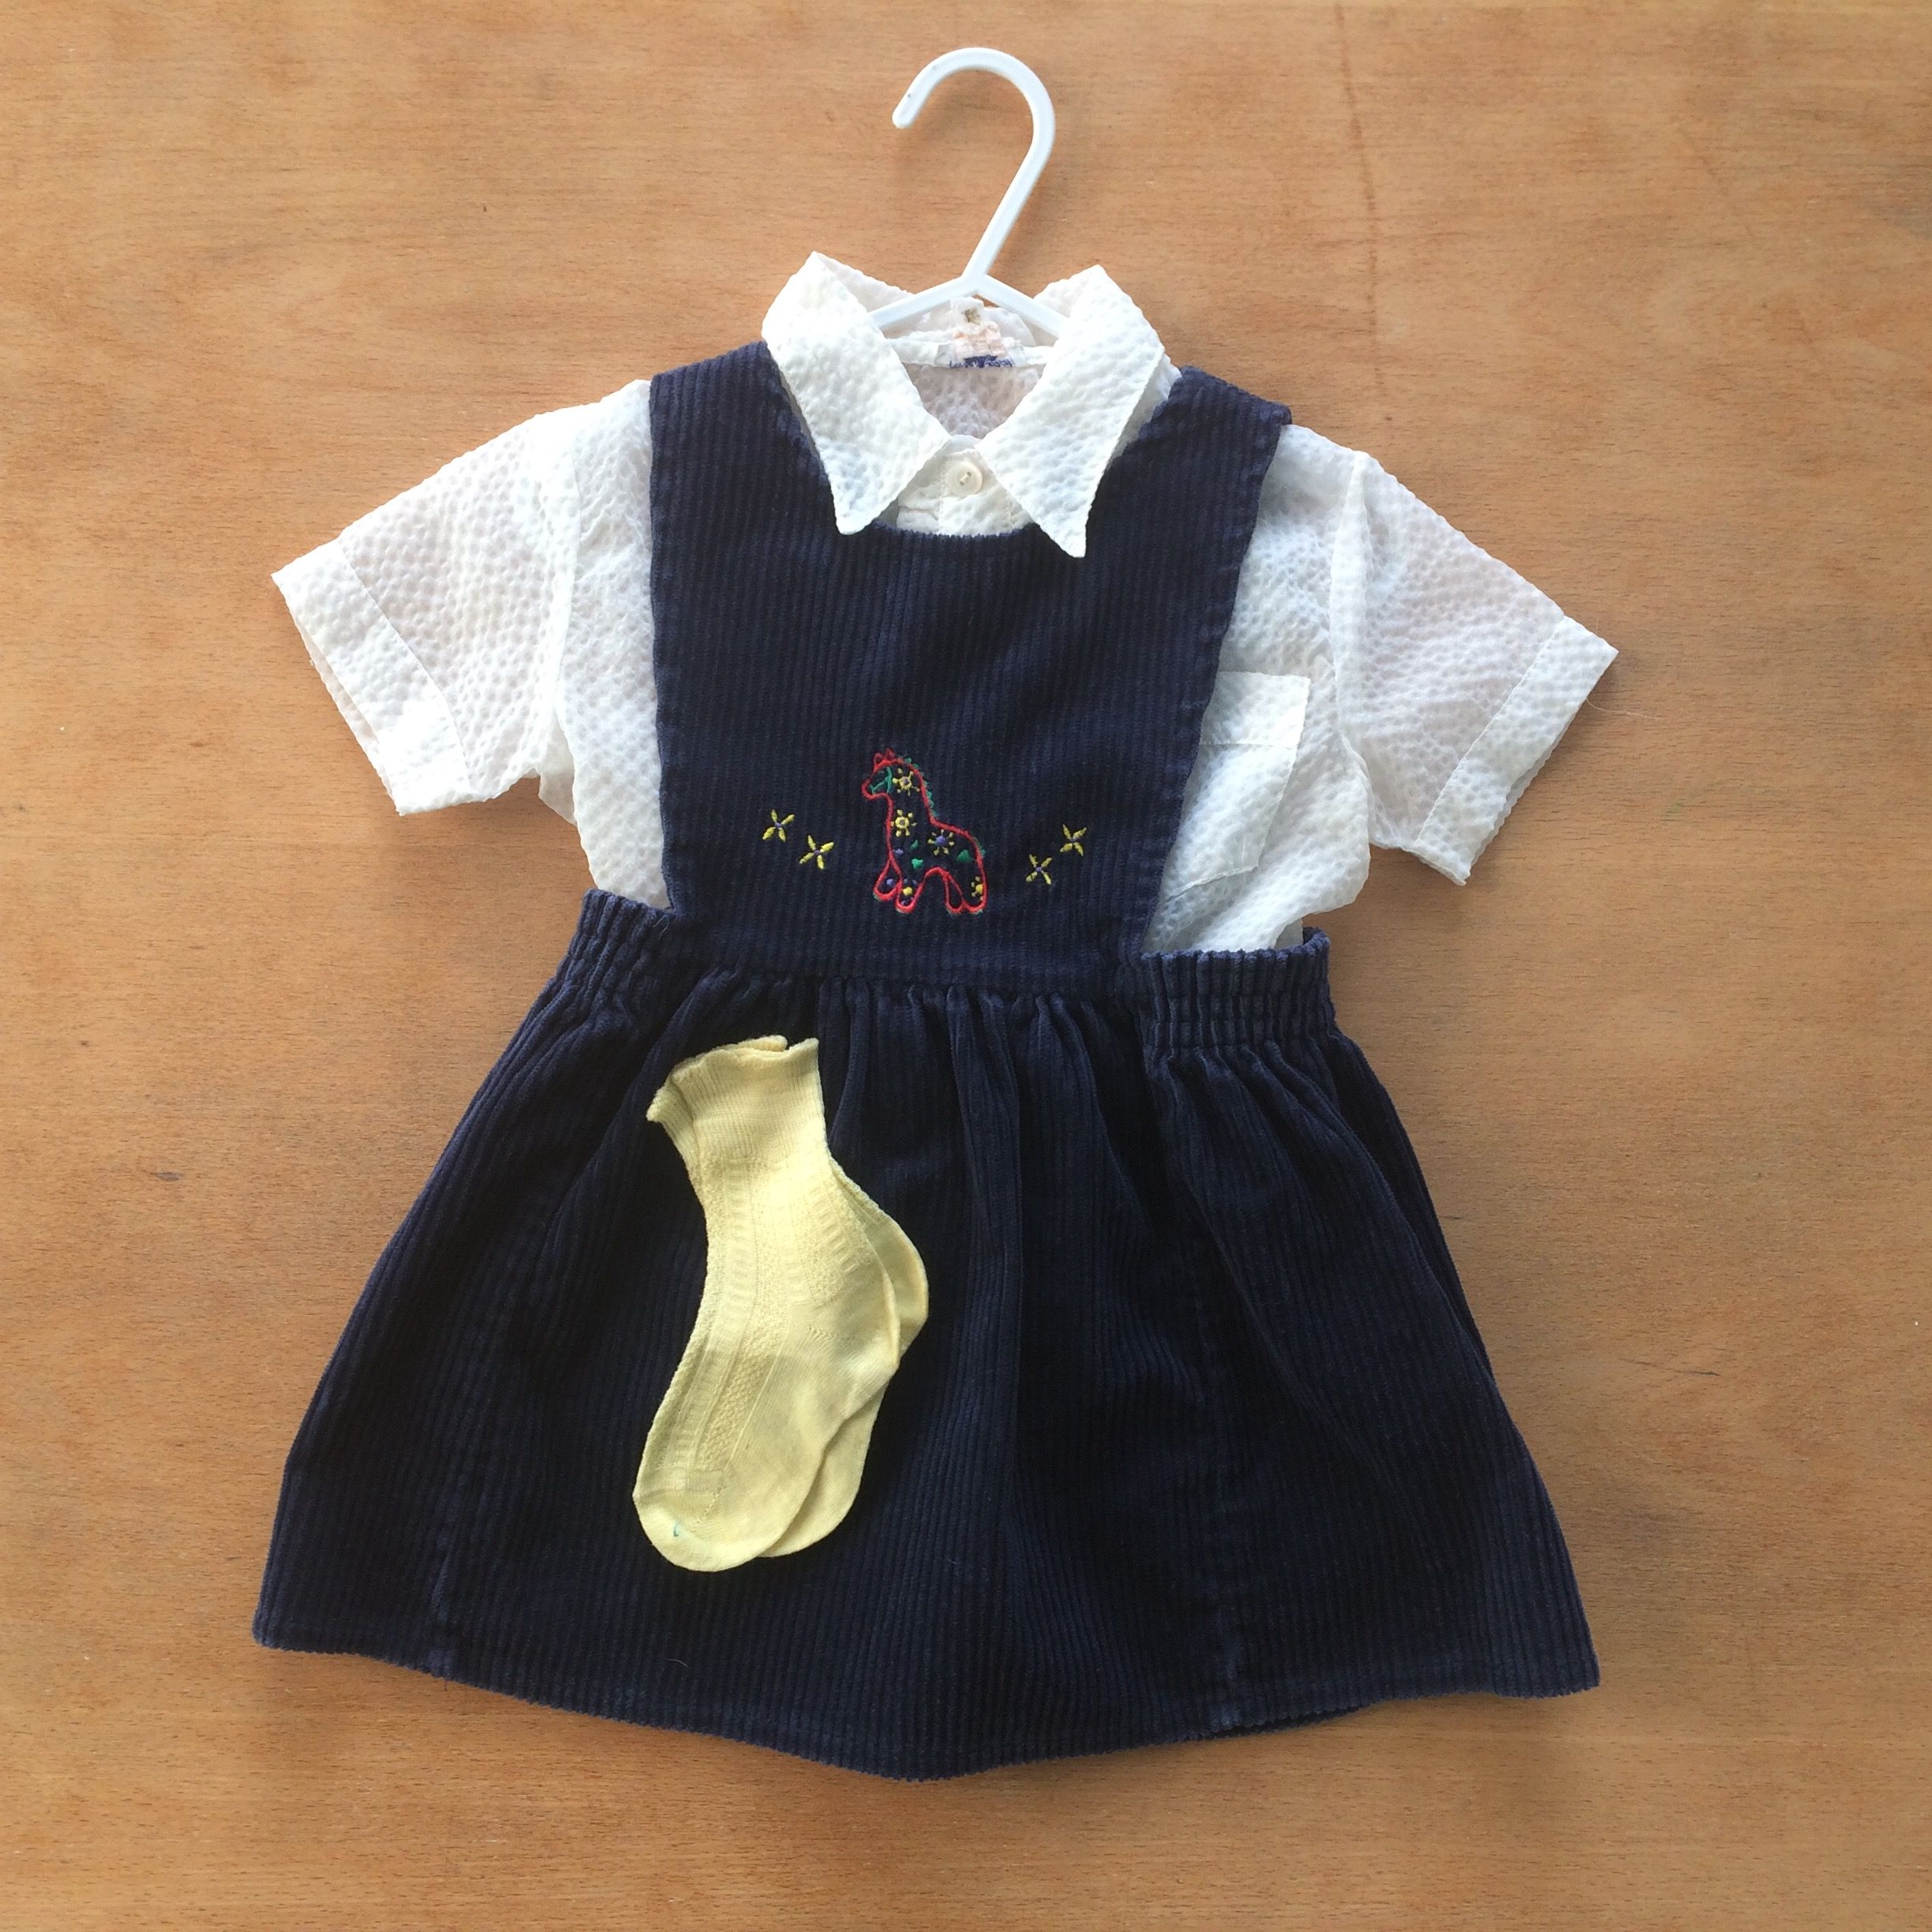 Vintage baby clothes vintage ladybird dress and 1950s girls blouse